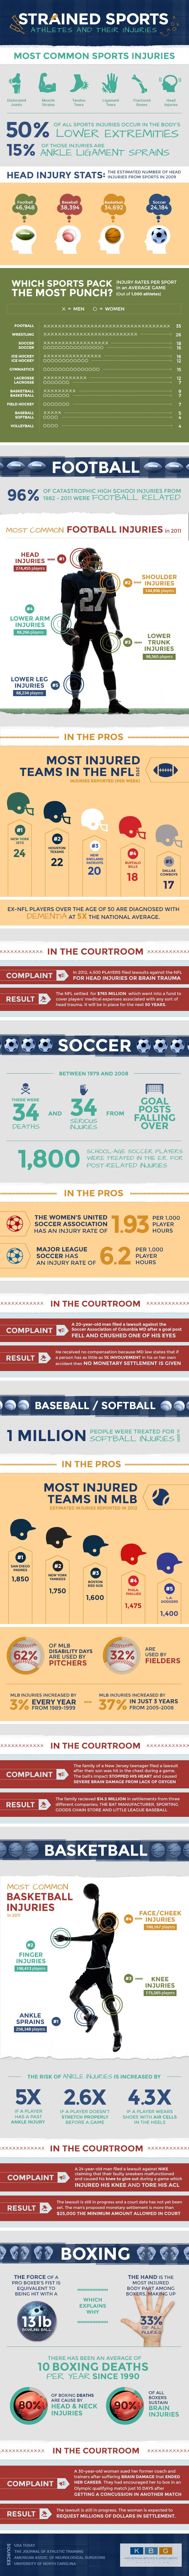 The Most Common Injuries from Sports Infographic